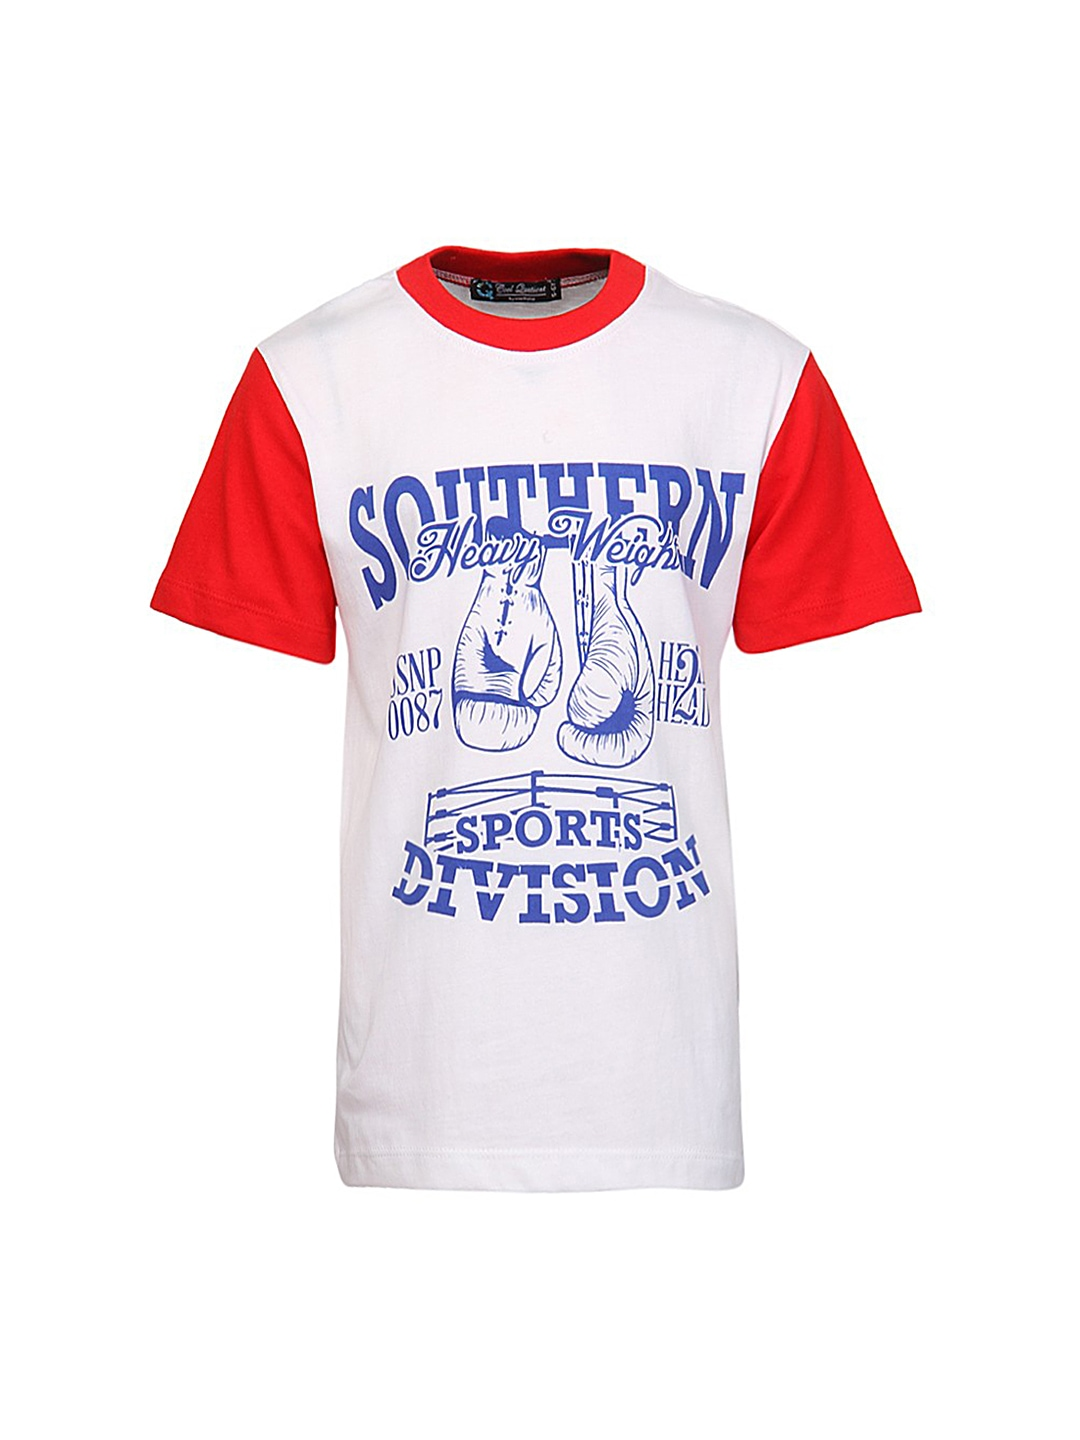 Myntra cool quotient boys blue white printed t shirt for Boys printed t shirts